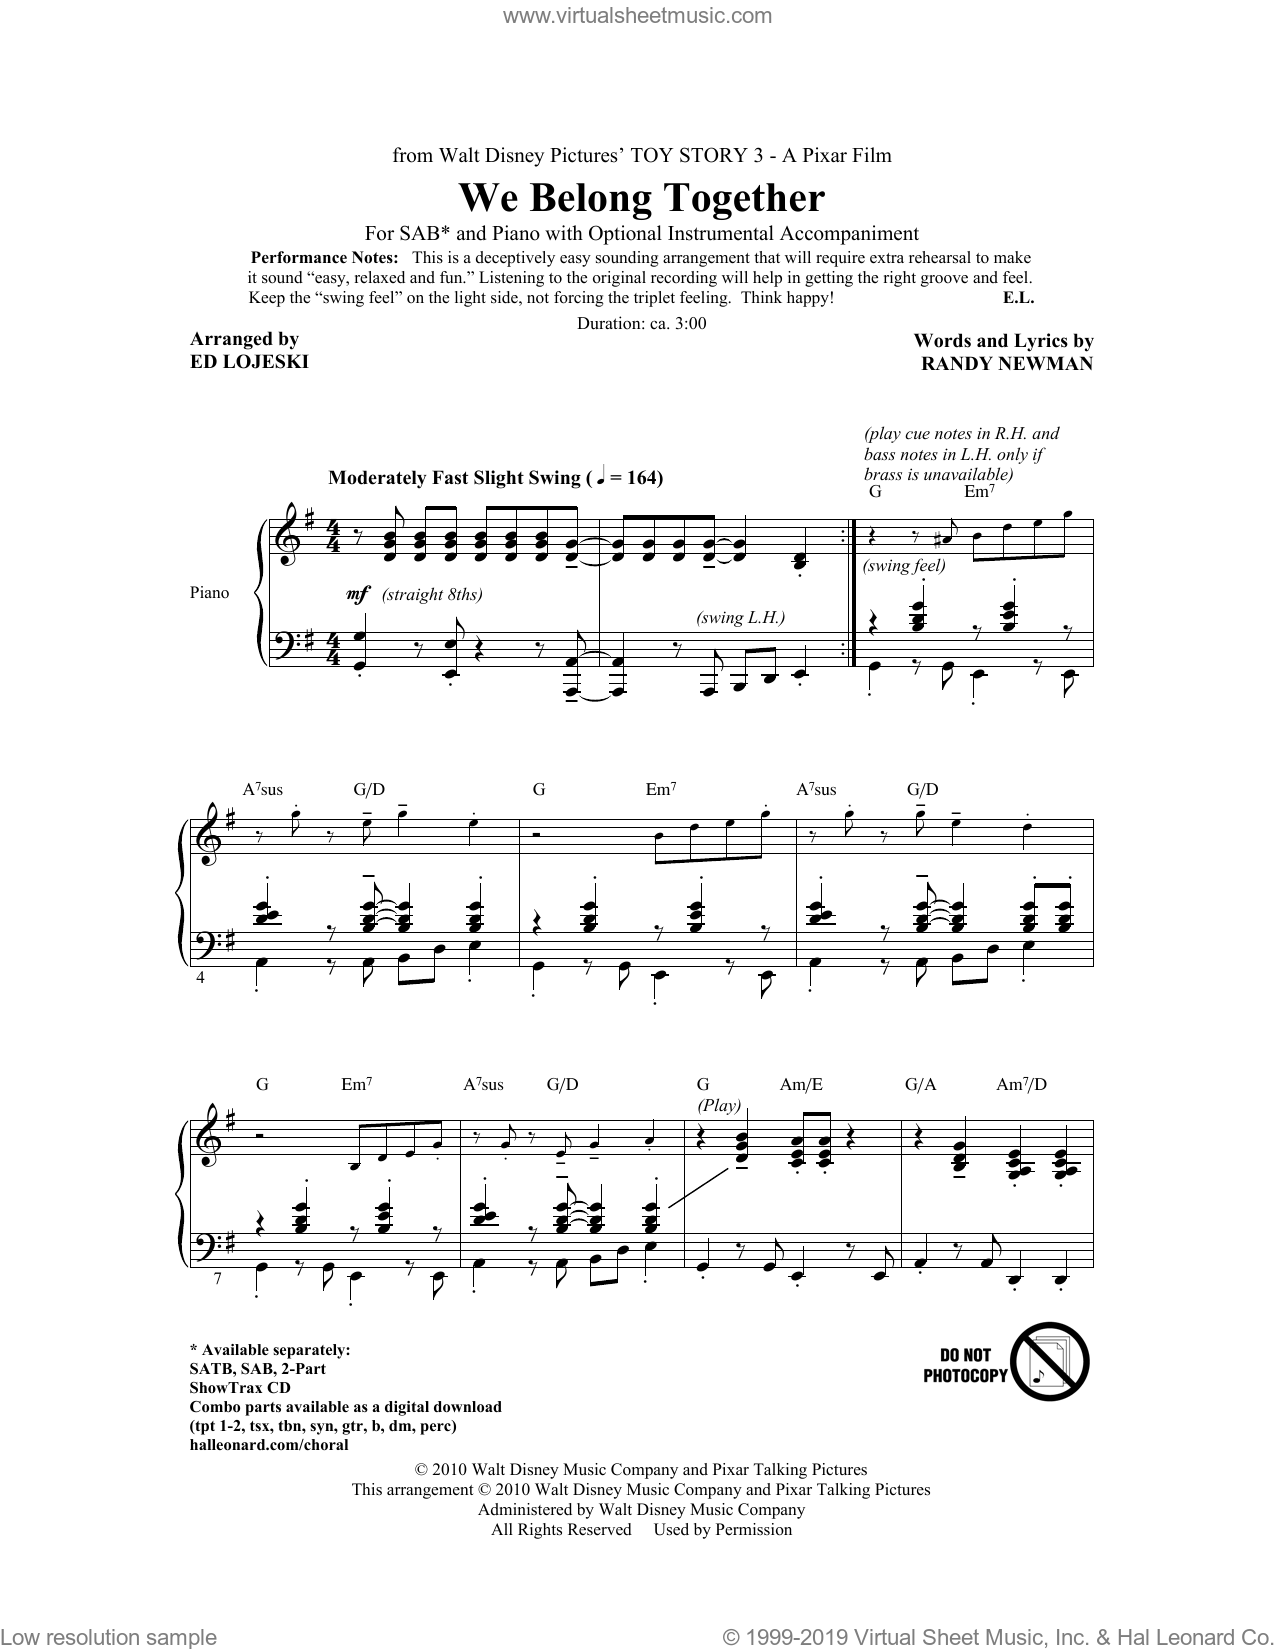 We Belong Together (from Toy Story 3) sheet music for choir (SAB) by Randy Newman and Ed Lojeski, intermediate. Score Image Preview.